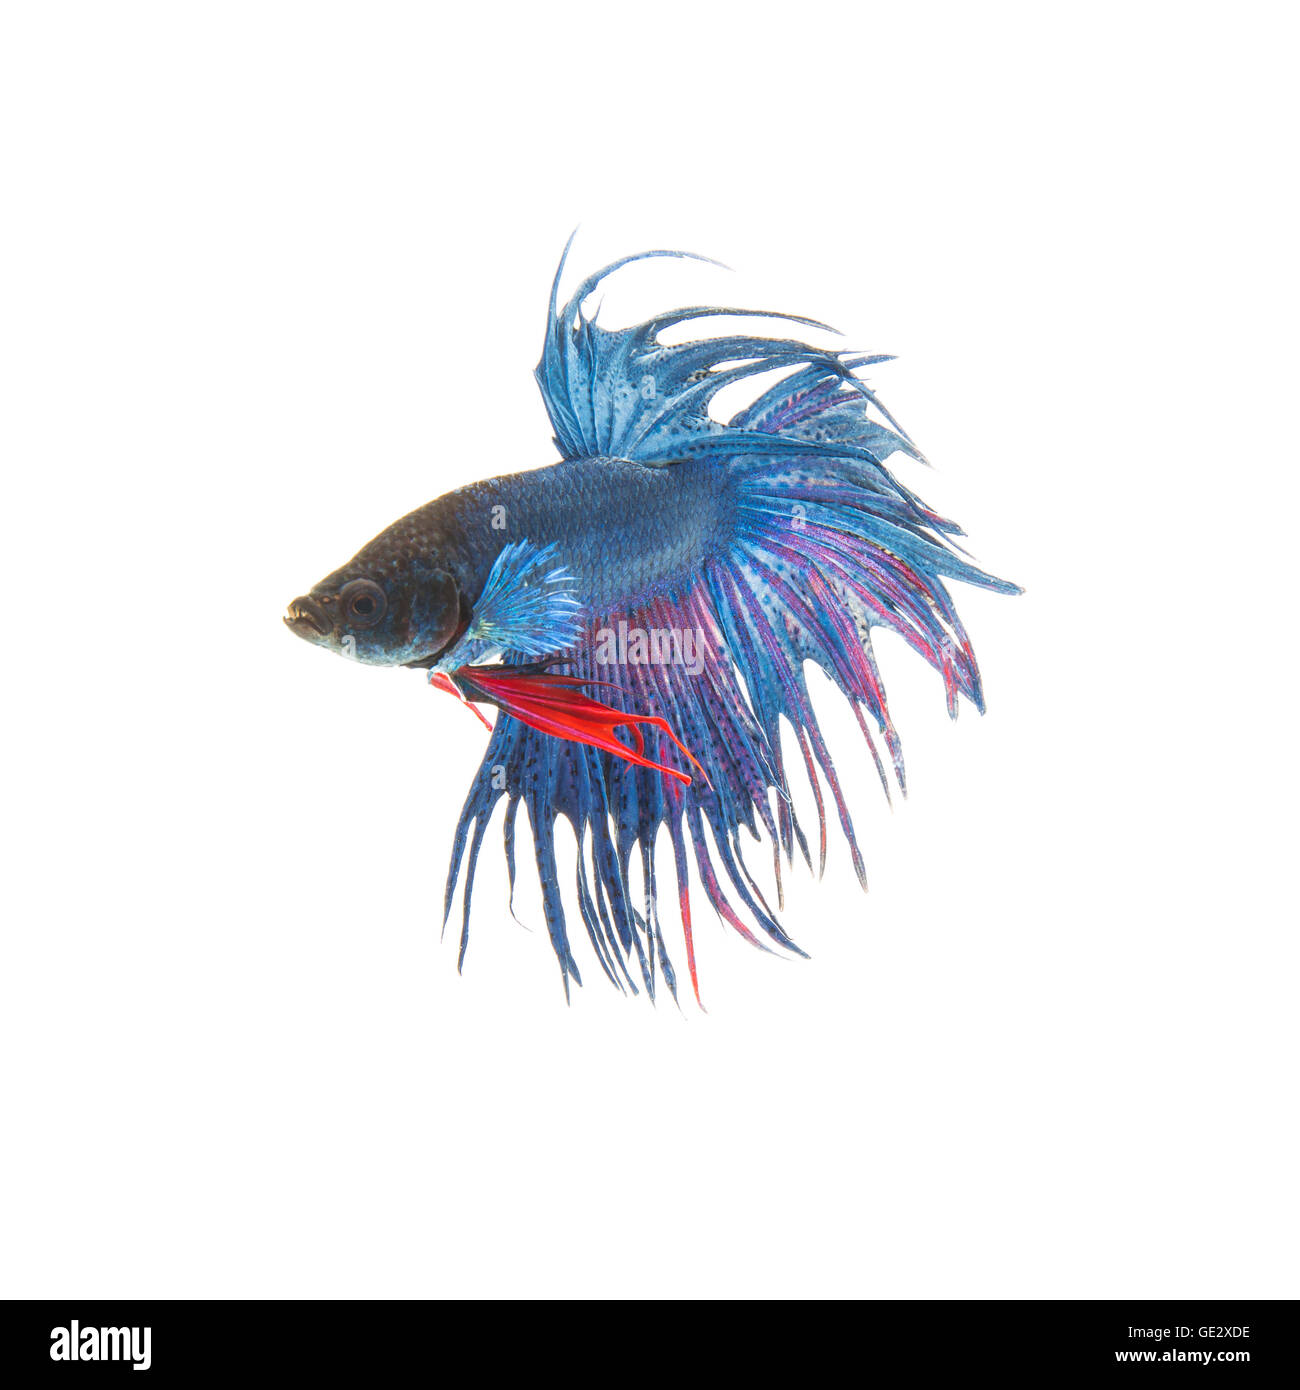 Blue Siamese Fighting Fish | Blue Siamese Fighting Fish Betta Splendens Isolated On White Stock